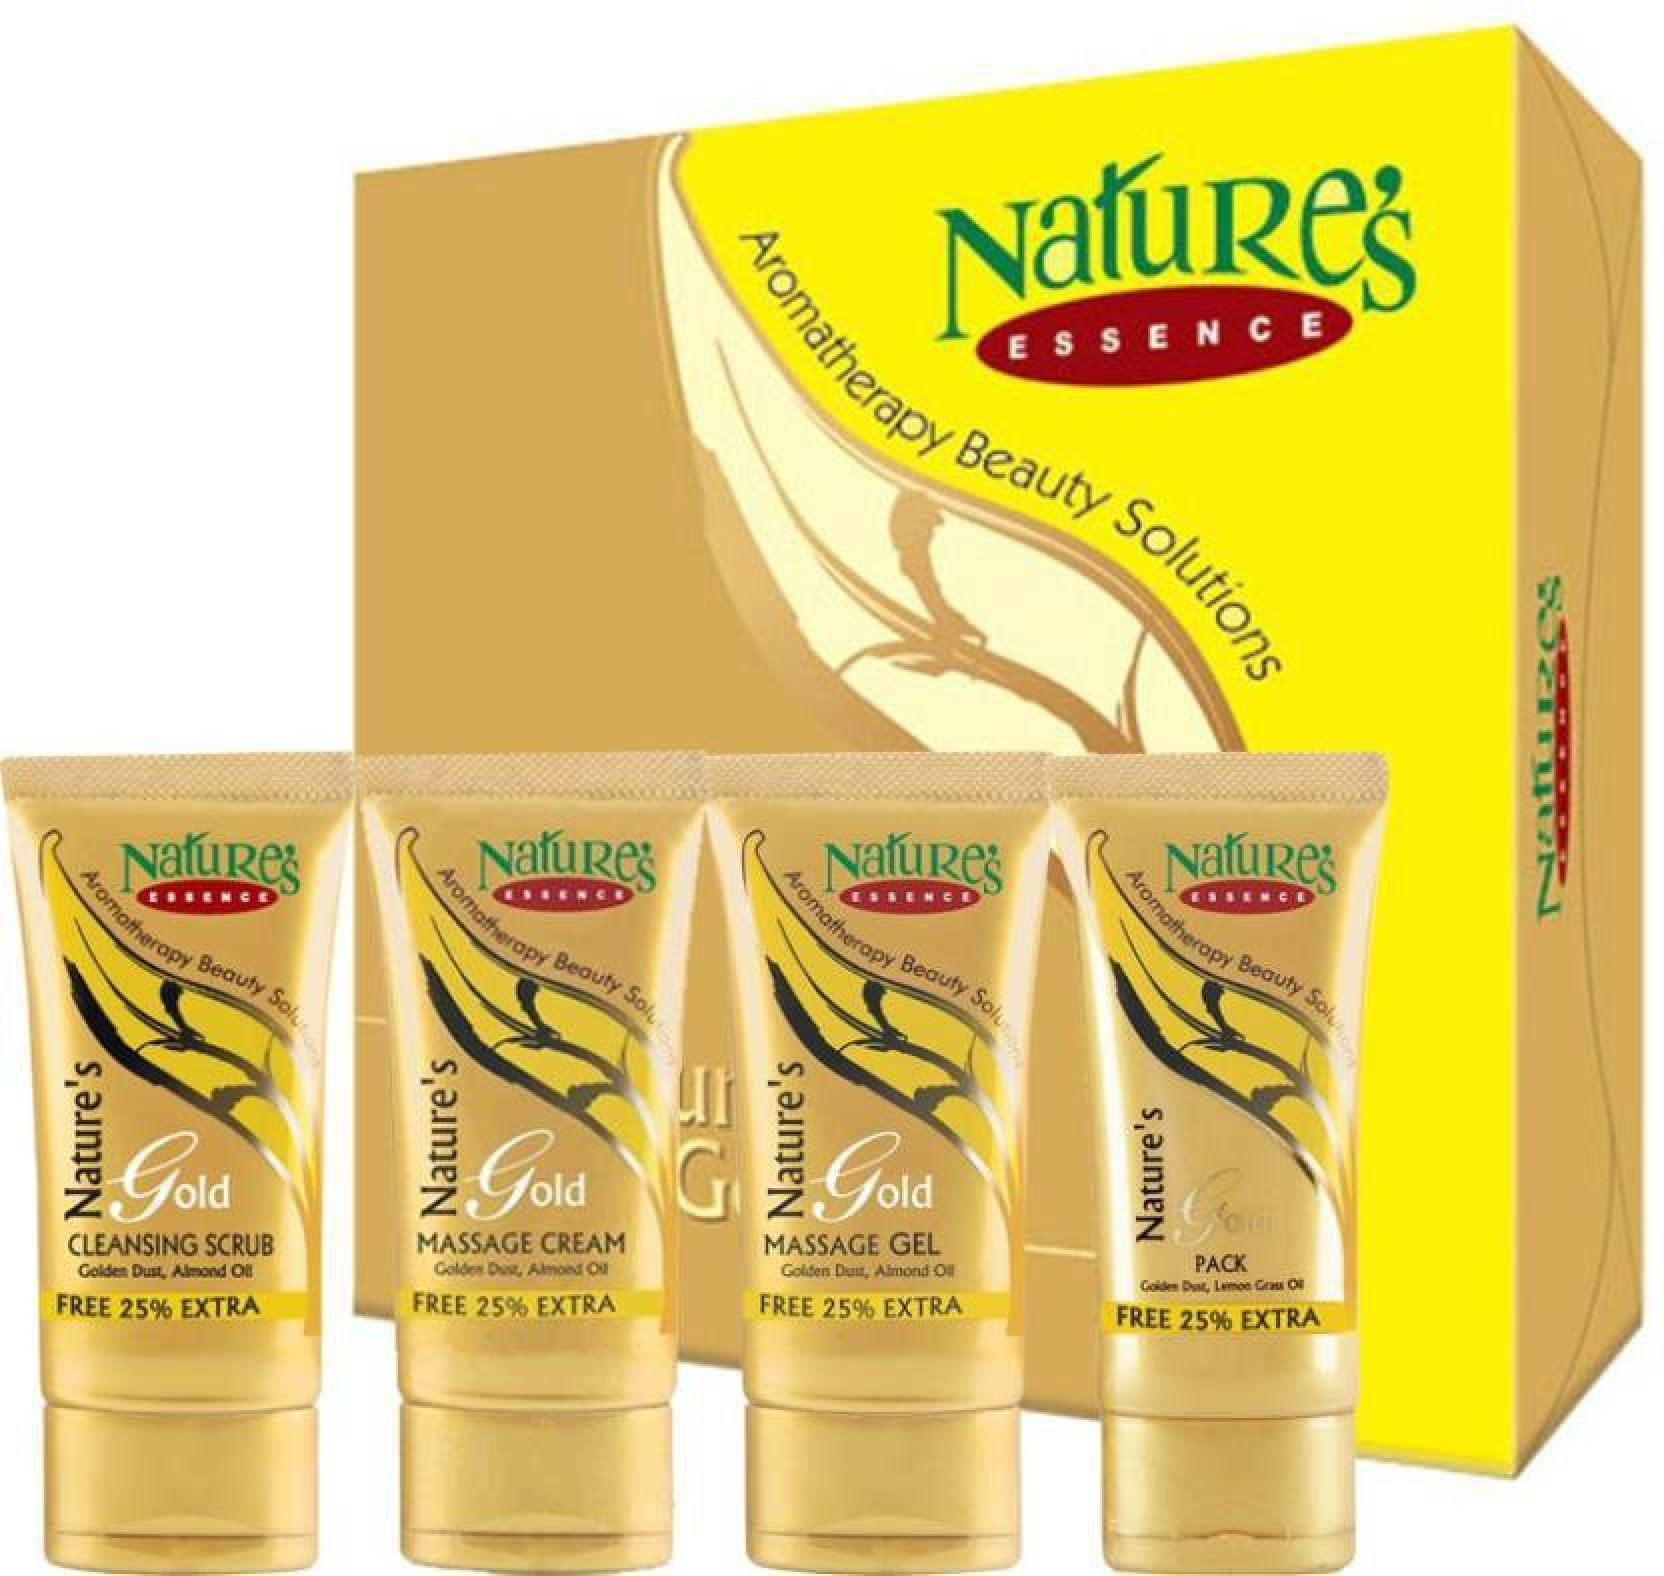 Natures Essence Gold Facial Kit Mini Pack 125 G Price In India Metal Polish Cream 50 Gr On Offer